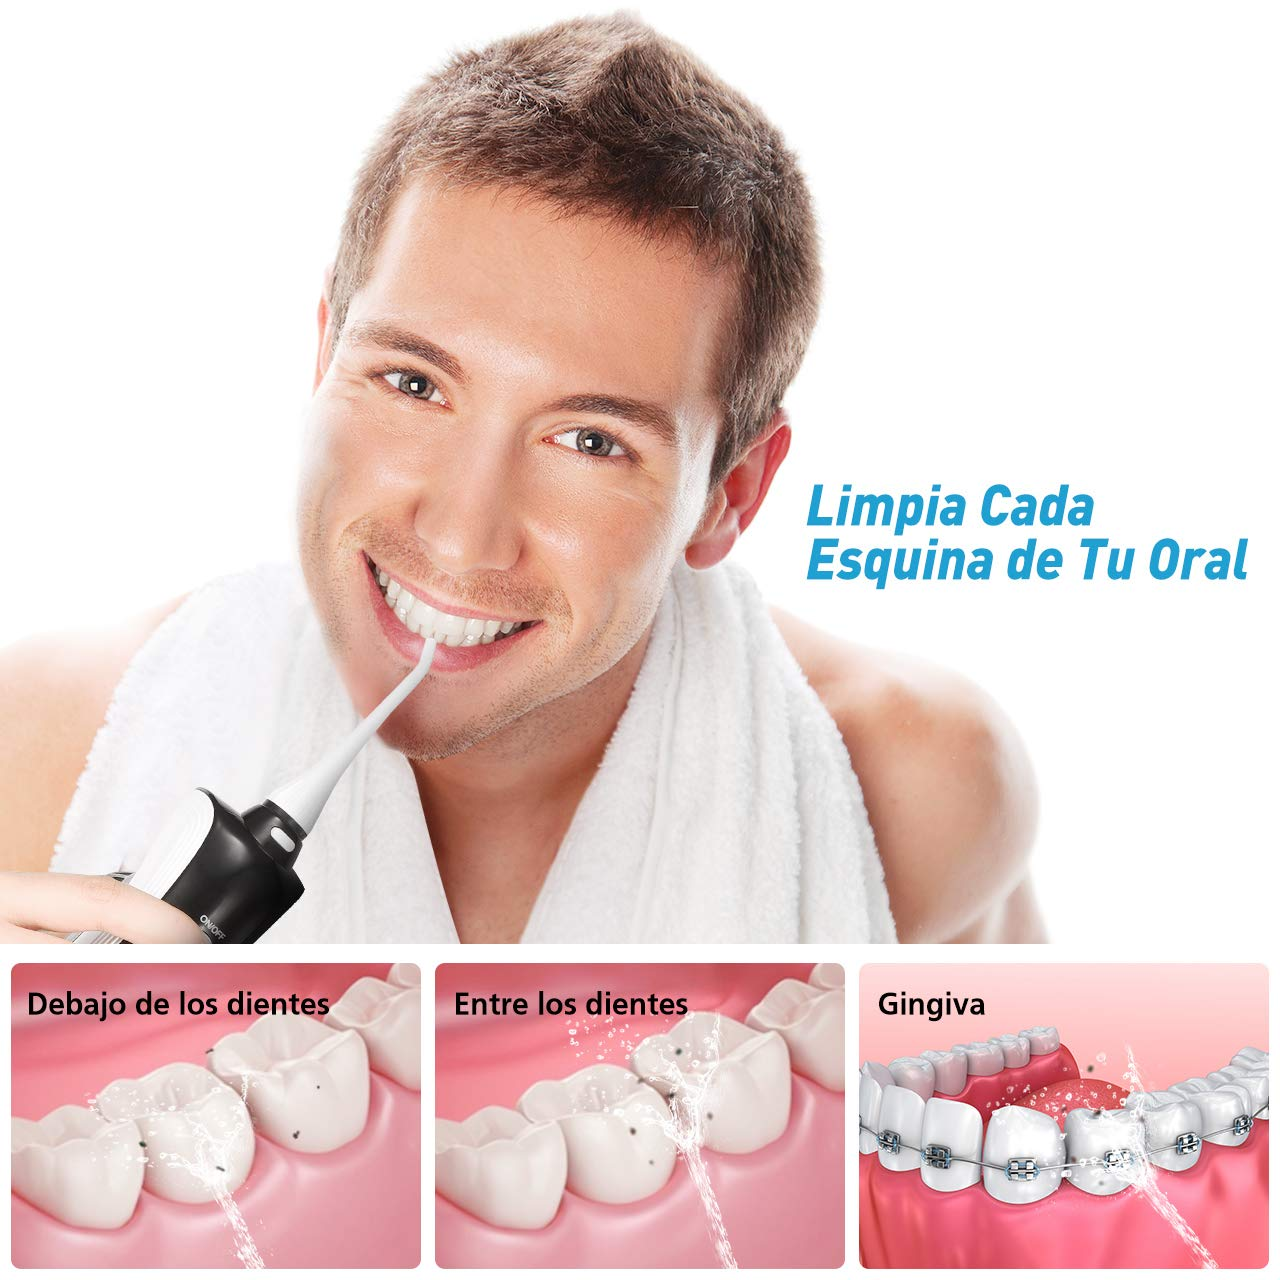 ELLESYE Irrigador Dental Inalambrico Profesional 330ml Capacidad,3 Modos con 2 Extremidades, Irrigador Oral Dental Portátil Recargable IPX7 Impermeable, ...